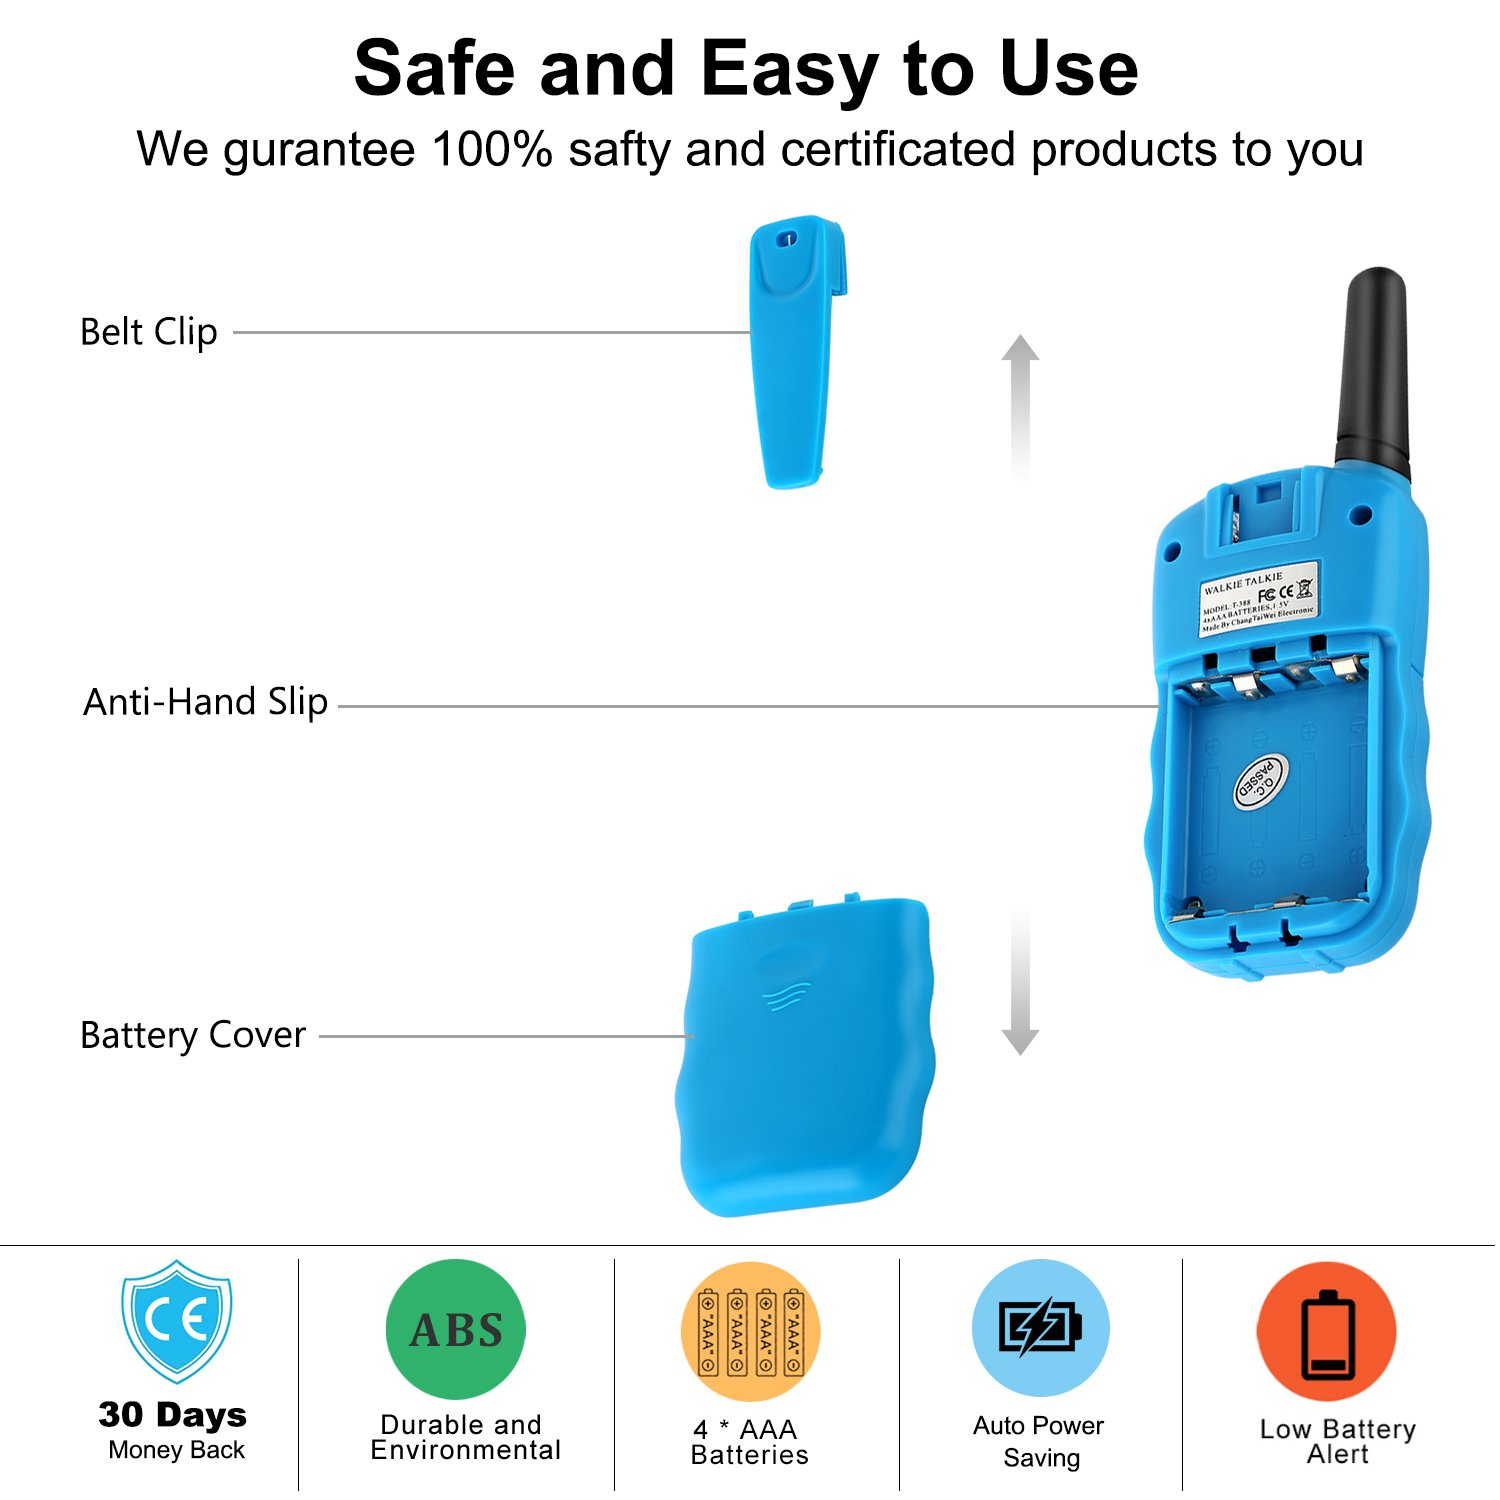 WisHouse Walkie Talkies for Kids,Fashion Toys for Boys and Girls Best Handheld Two Way Radio with Flashlight for 4 Year Old and up to Camping Hiking Riding and Cruise Ship(T388 Blue 4 Pack) by Wishouse (Image #7)